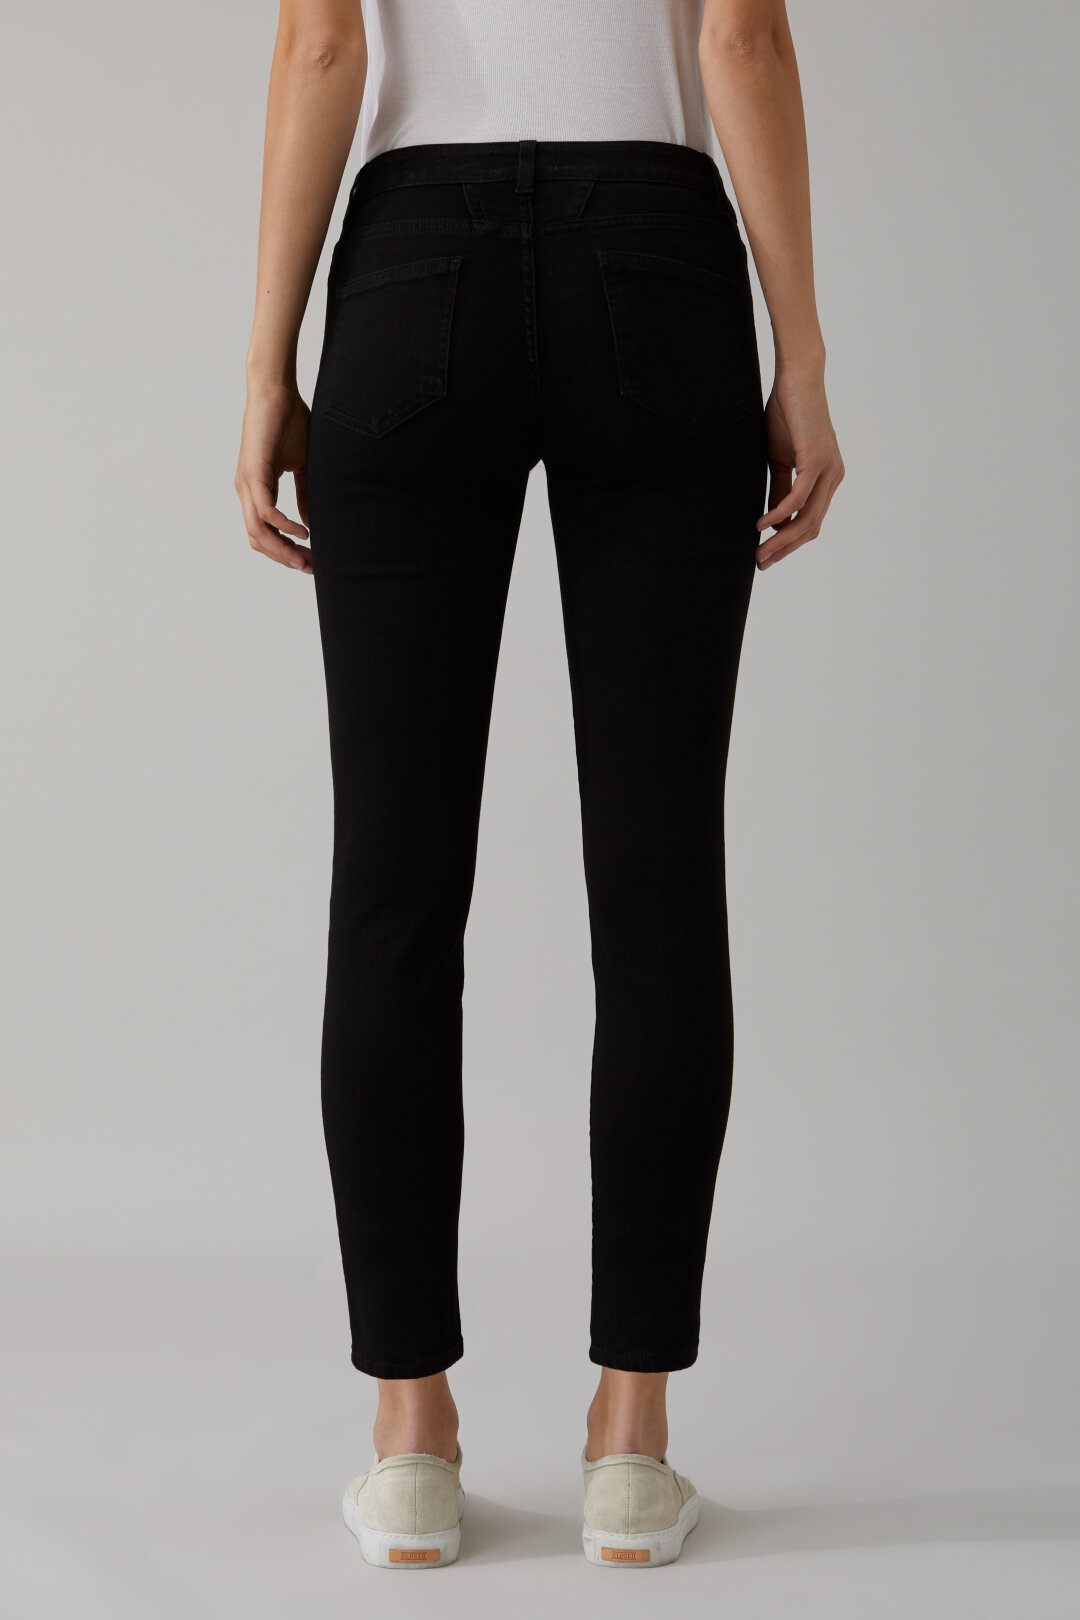 Baker Black Satin Denim Power Stretch